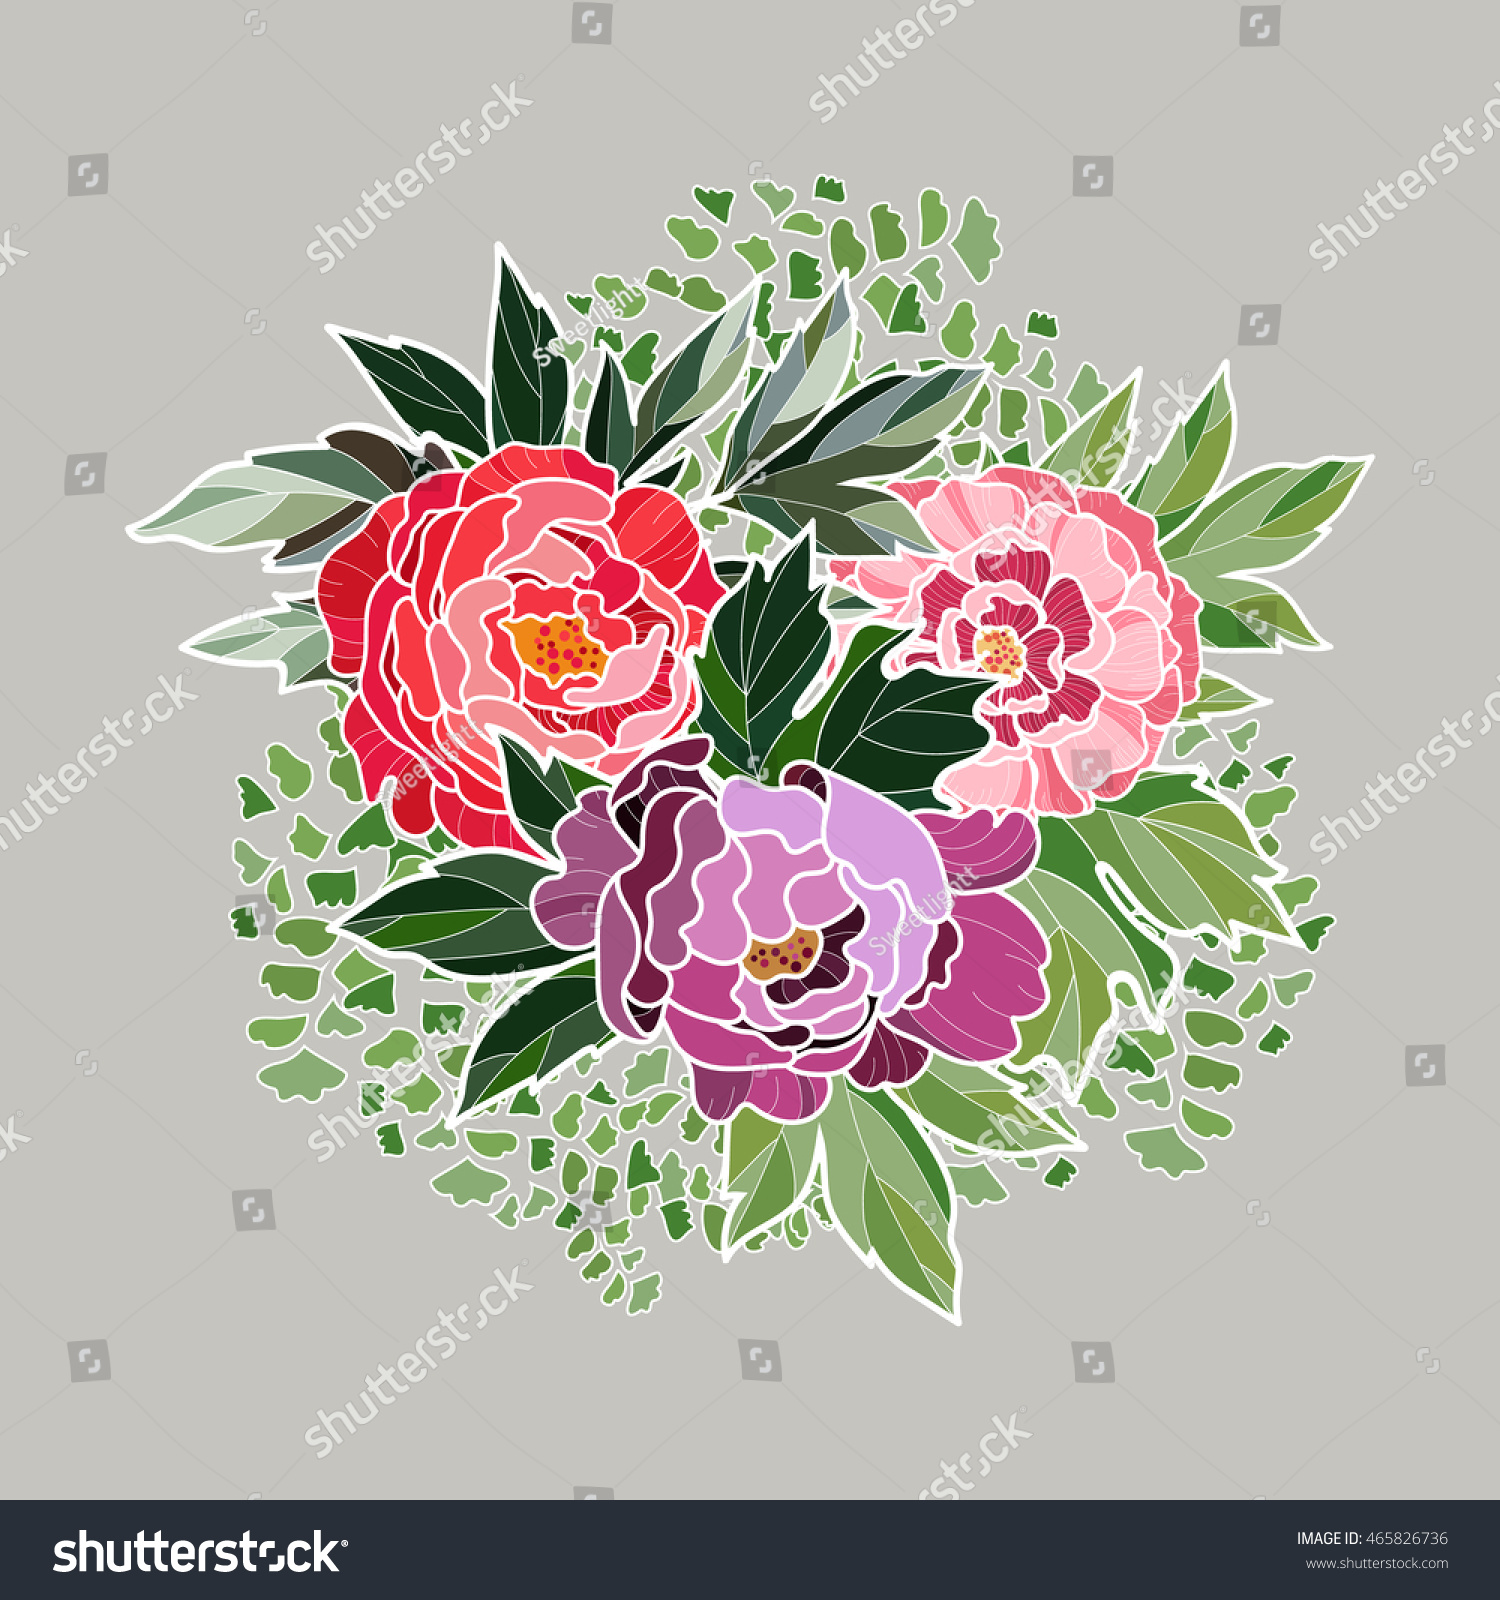 Round floral sticker hand drawn vector illustration floral design